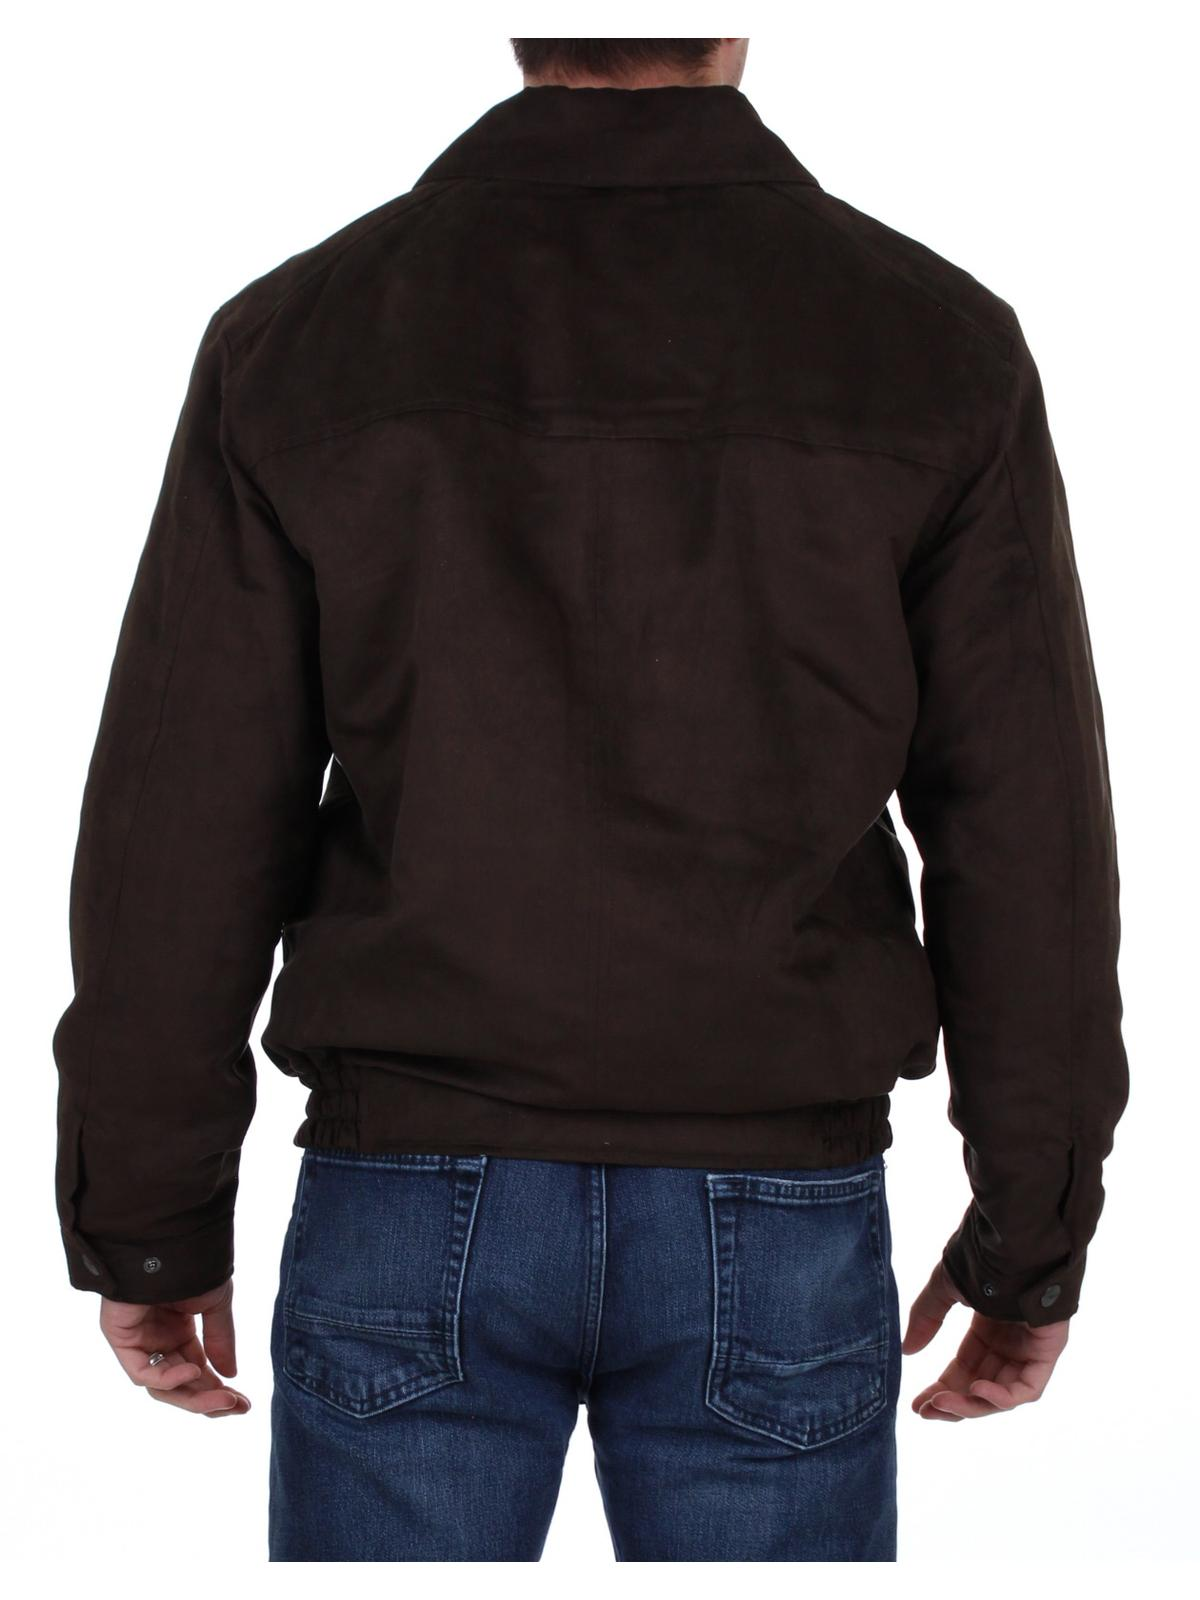 Weatherproof Mens Microsuede Water Resistant Bomber Jacket Brown Size M